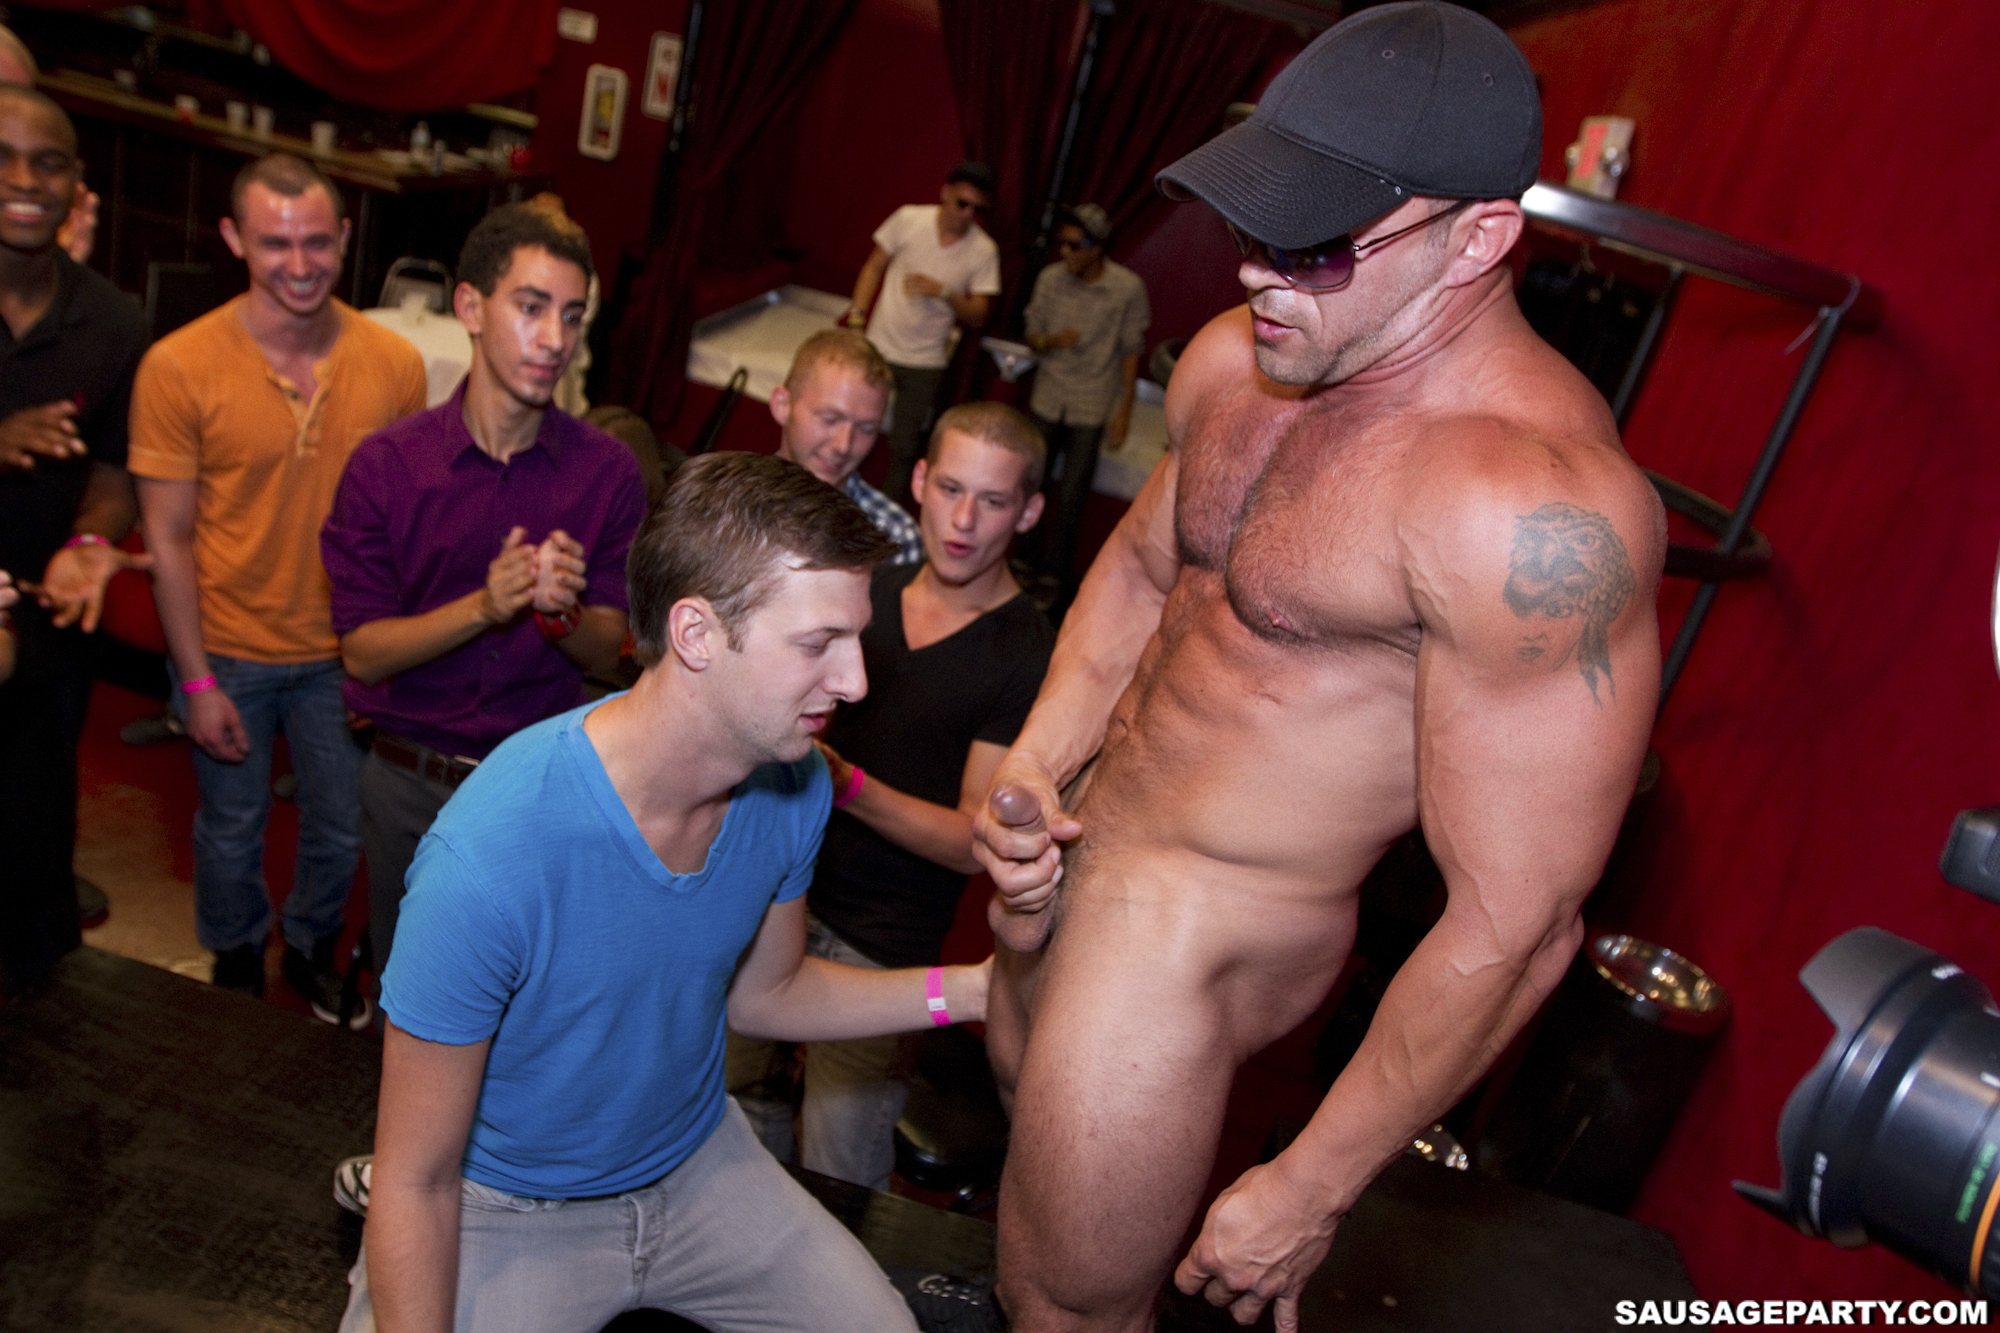 Free gay group blow job porn and guys 10